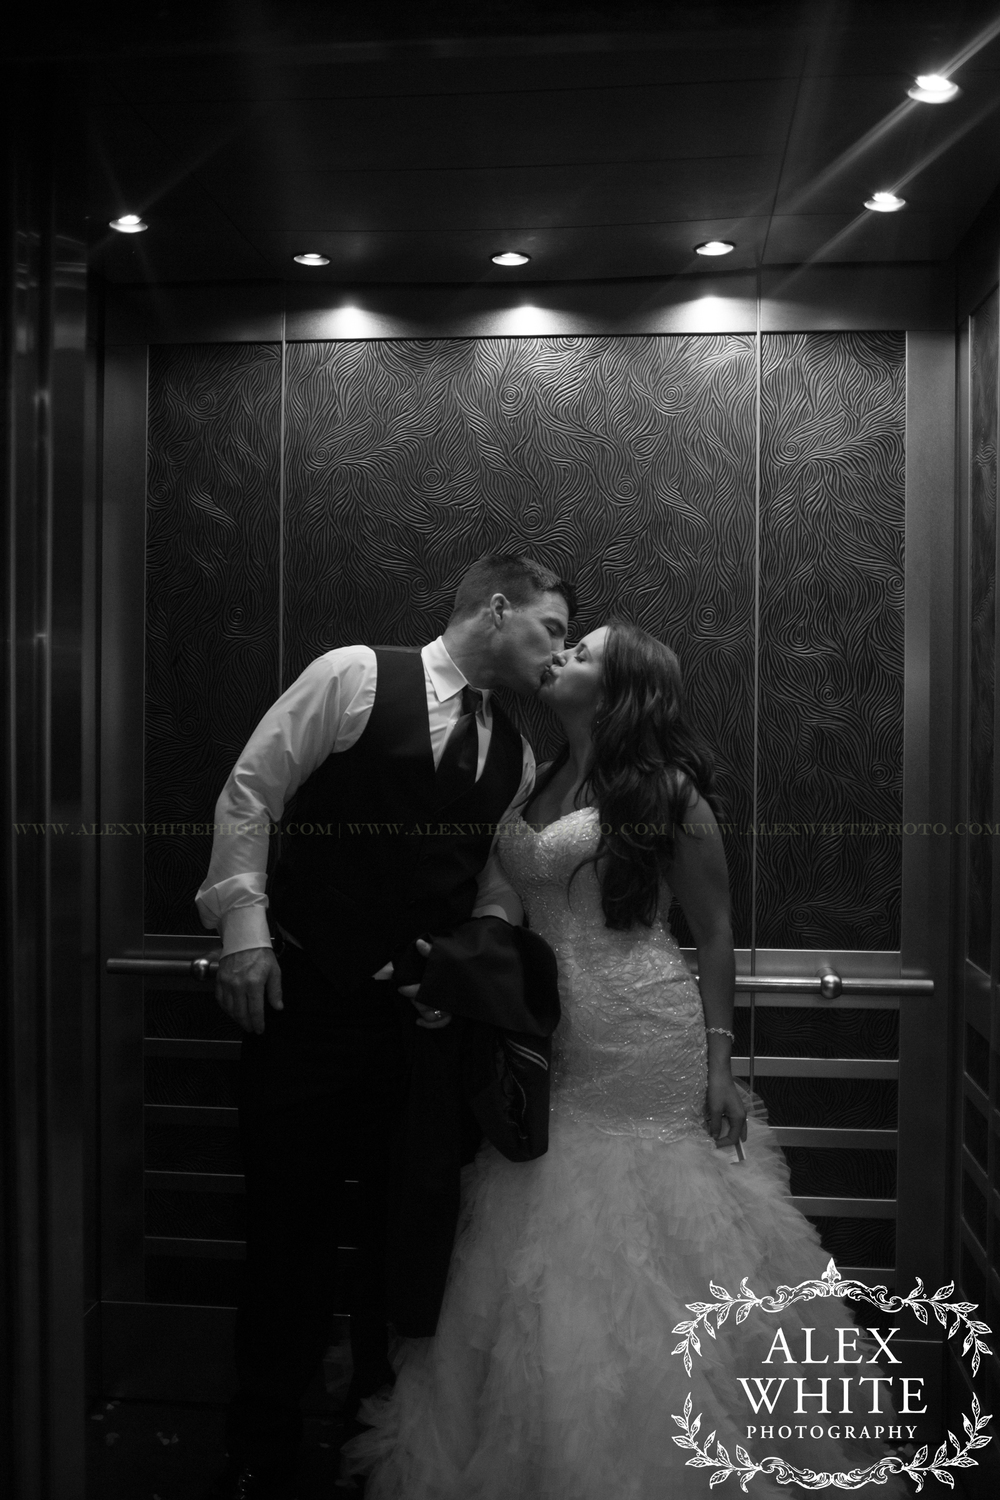 The best part about their exit was the elevator. Such a romantic way to say goodbye :)